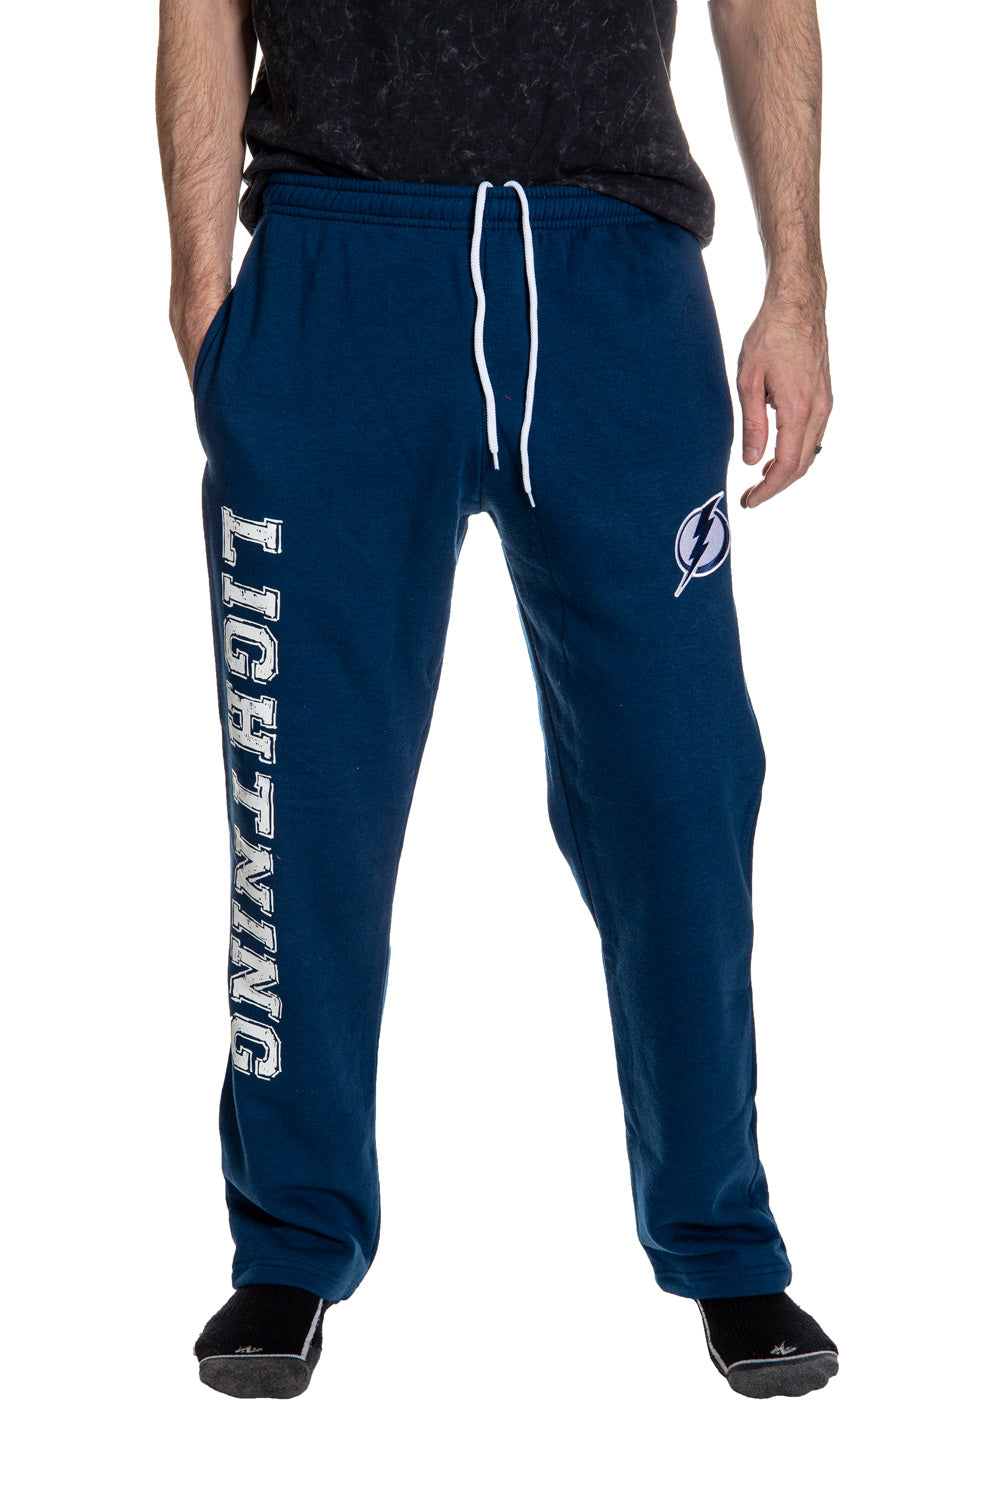 Tampa Bay Lightning Premium Fleece Sweatpants Front View.